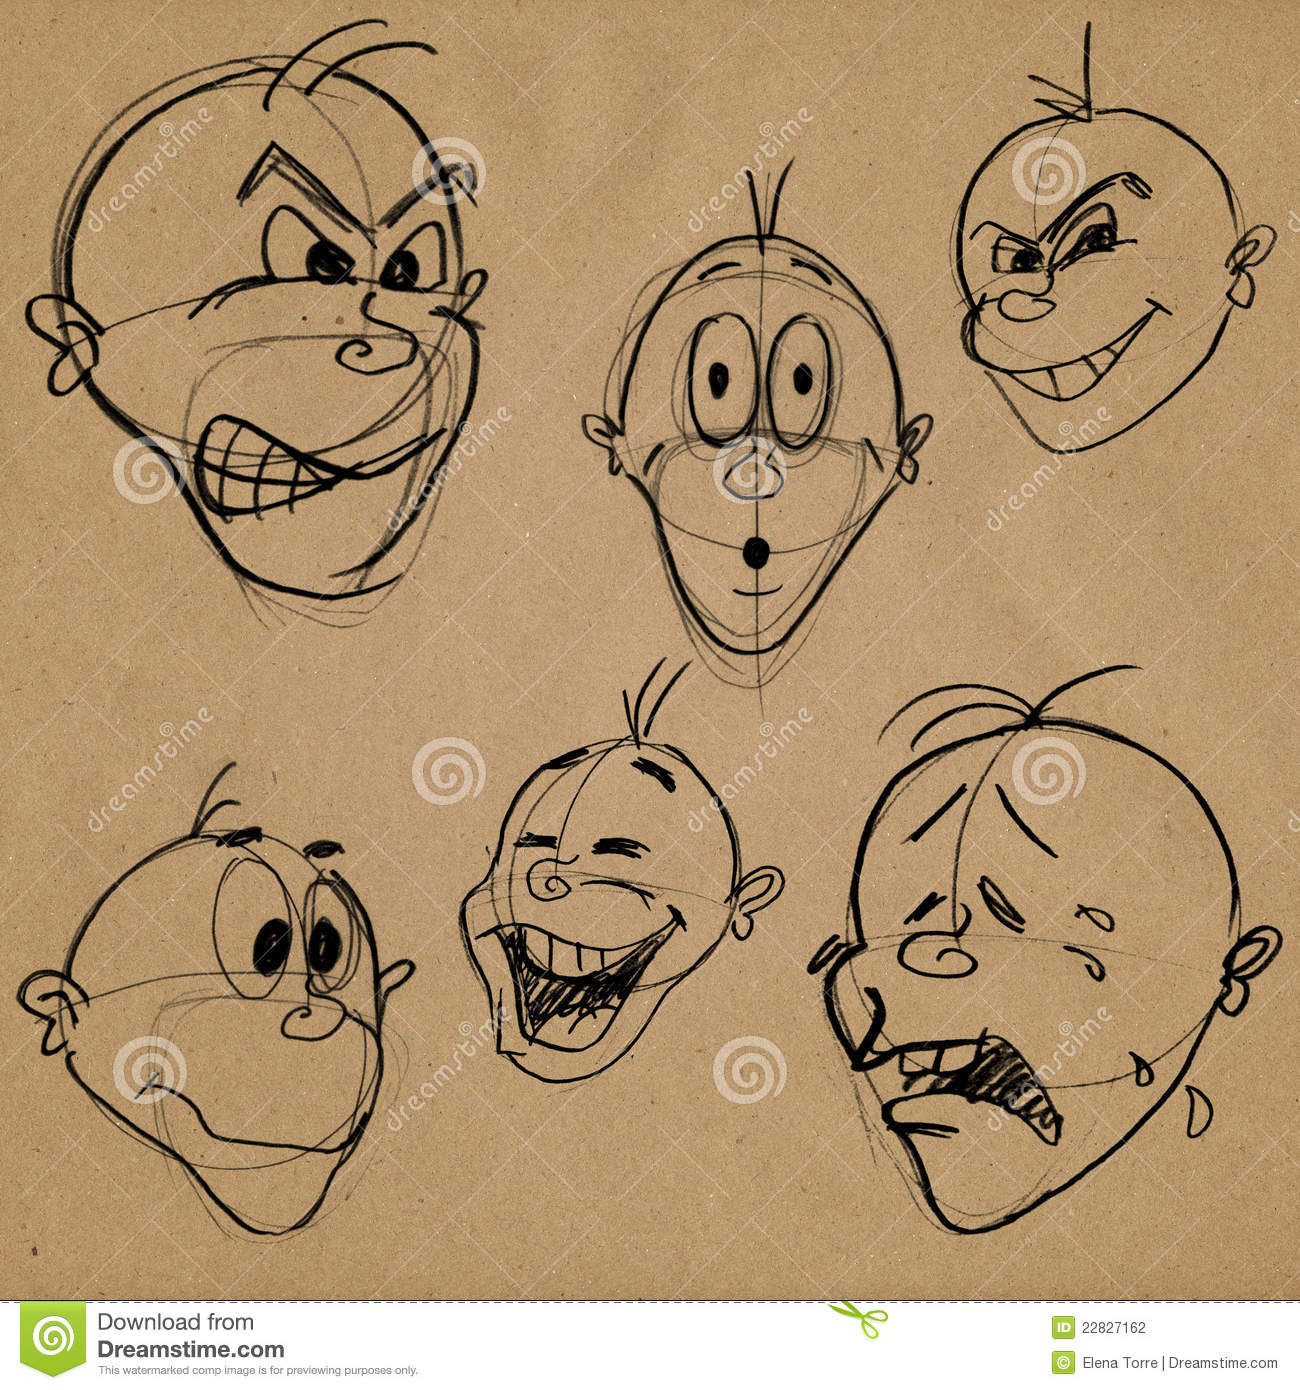 Consider, that facial expressions caricatures are not